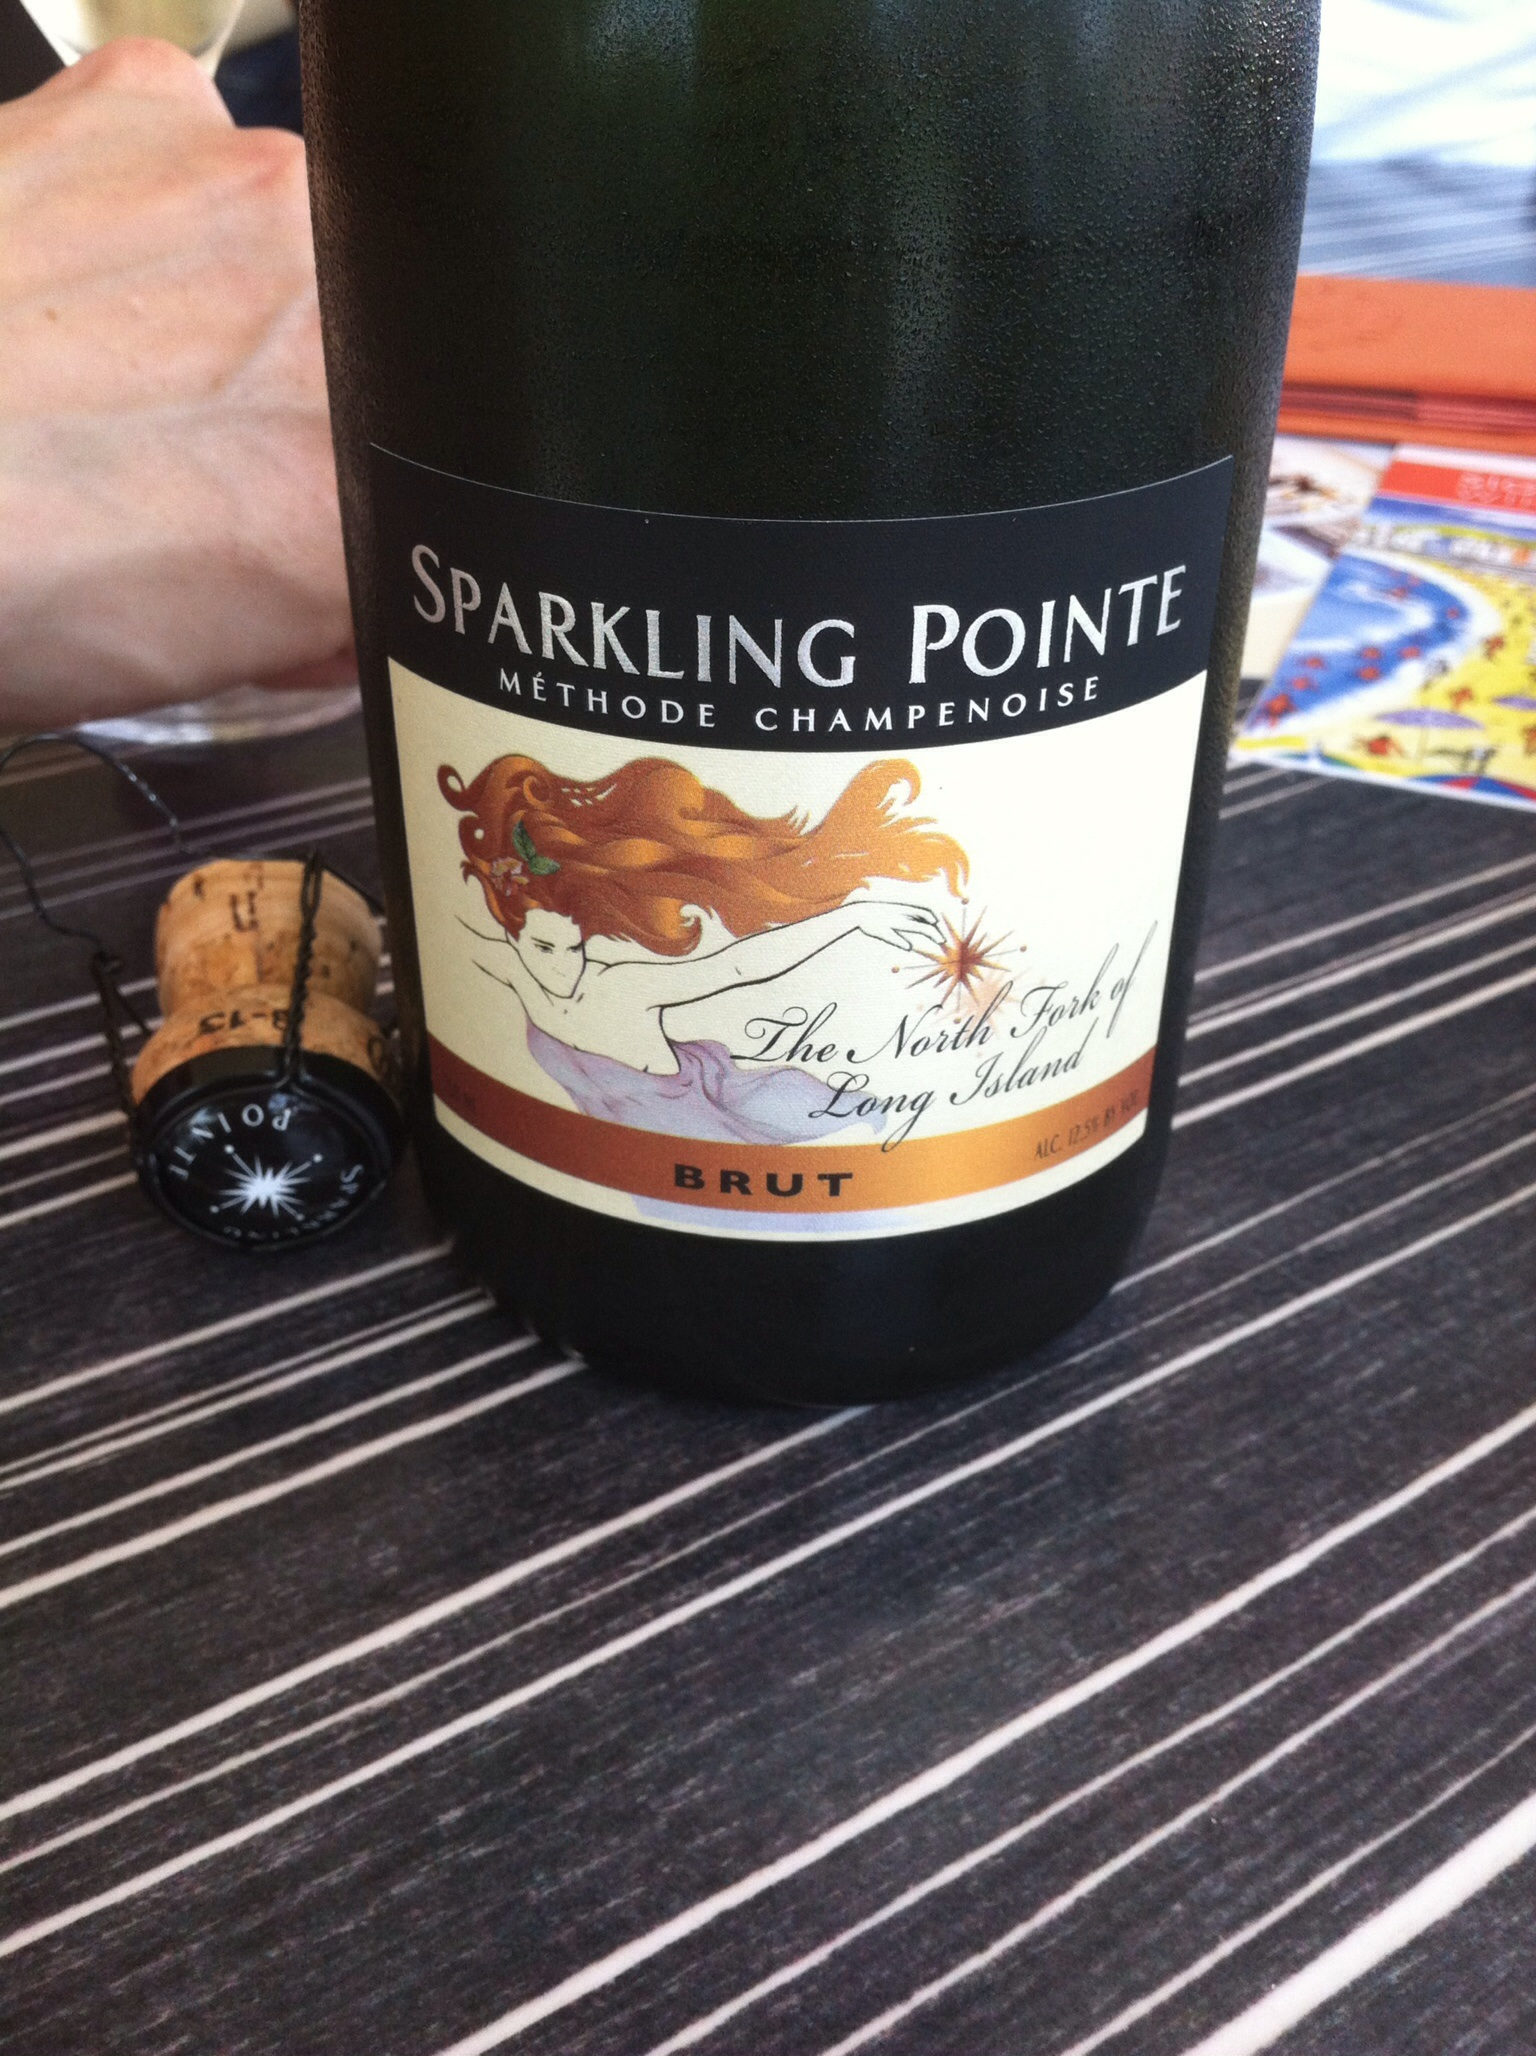 Sparkling Pointe Brut, 2010.  Photo by Shana Sokol, Shana Speaks Wine.